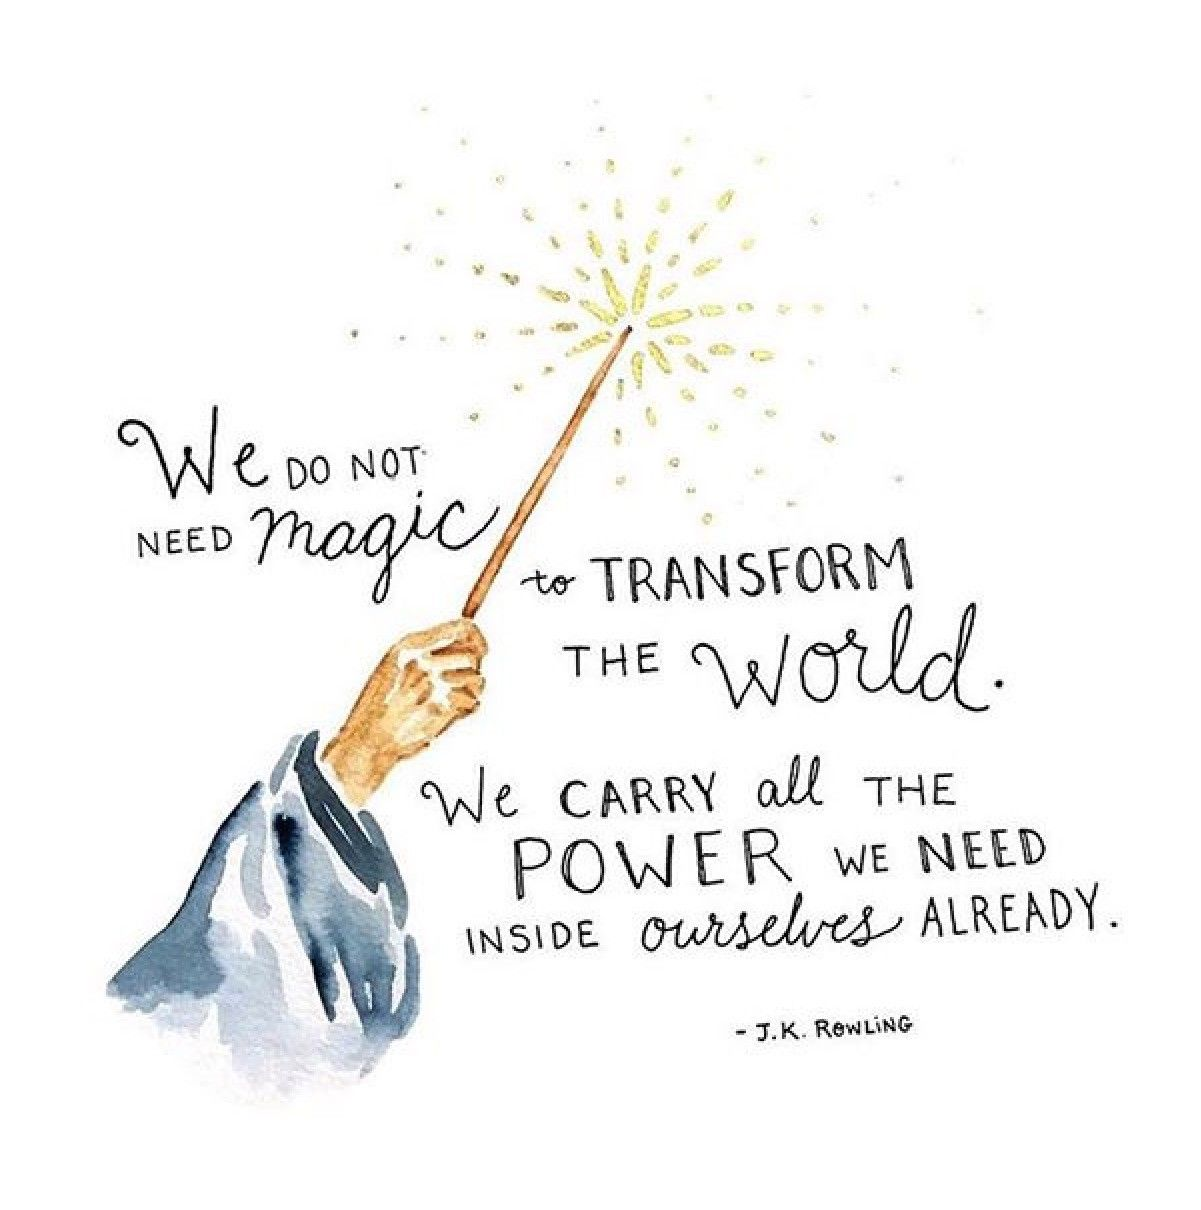 Harry Potter Love Quotes We Do Not Need Magic To Transform Our World Harry Potter Quote Albus